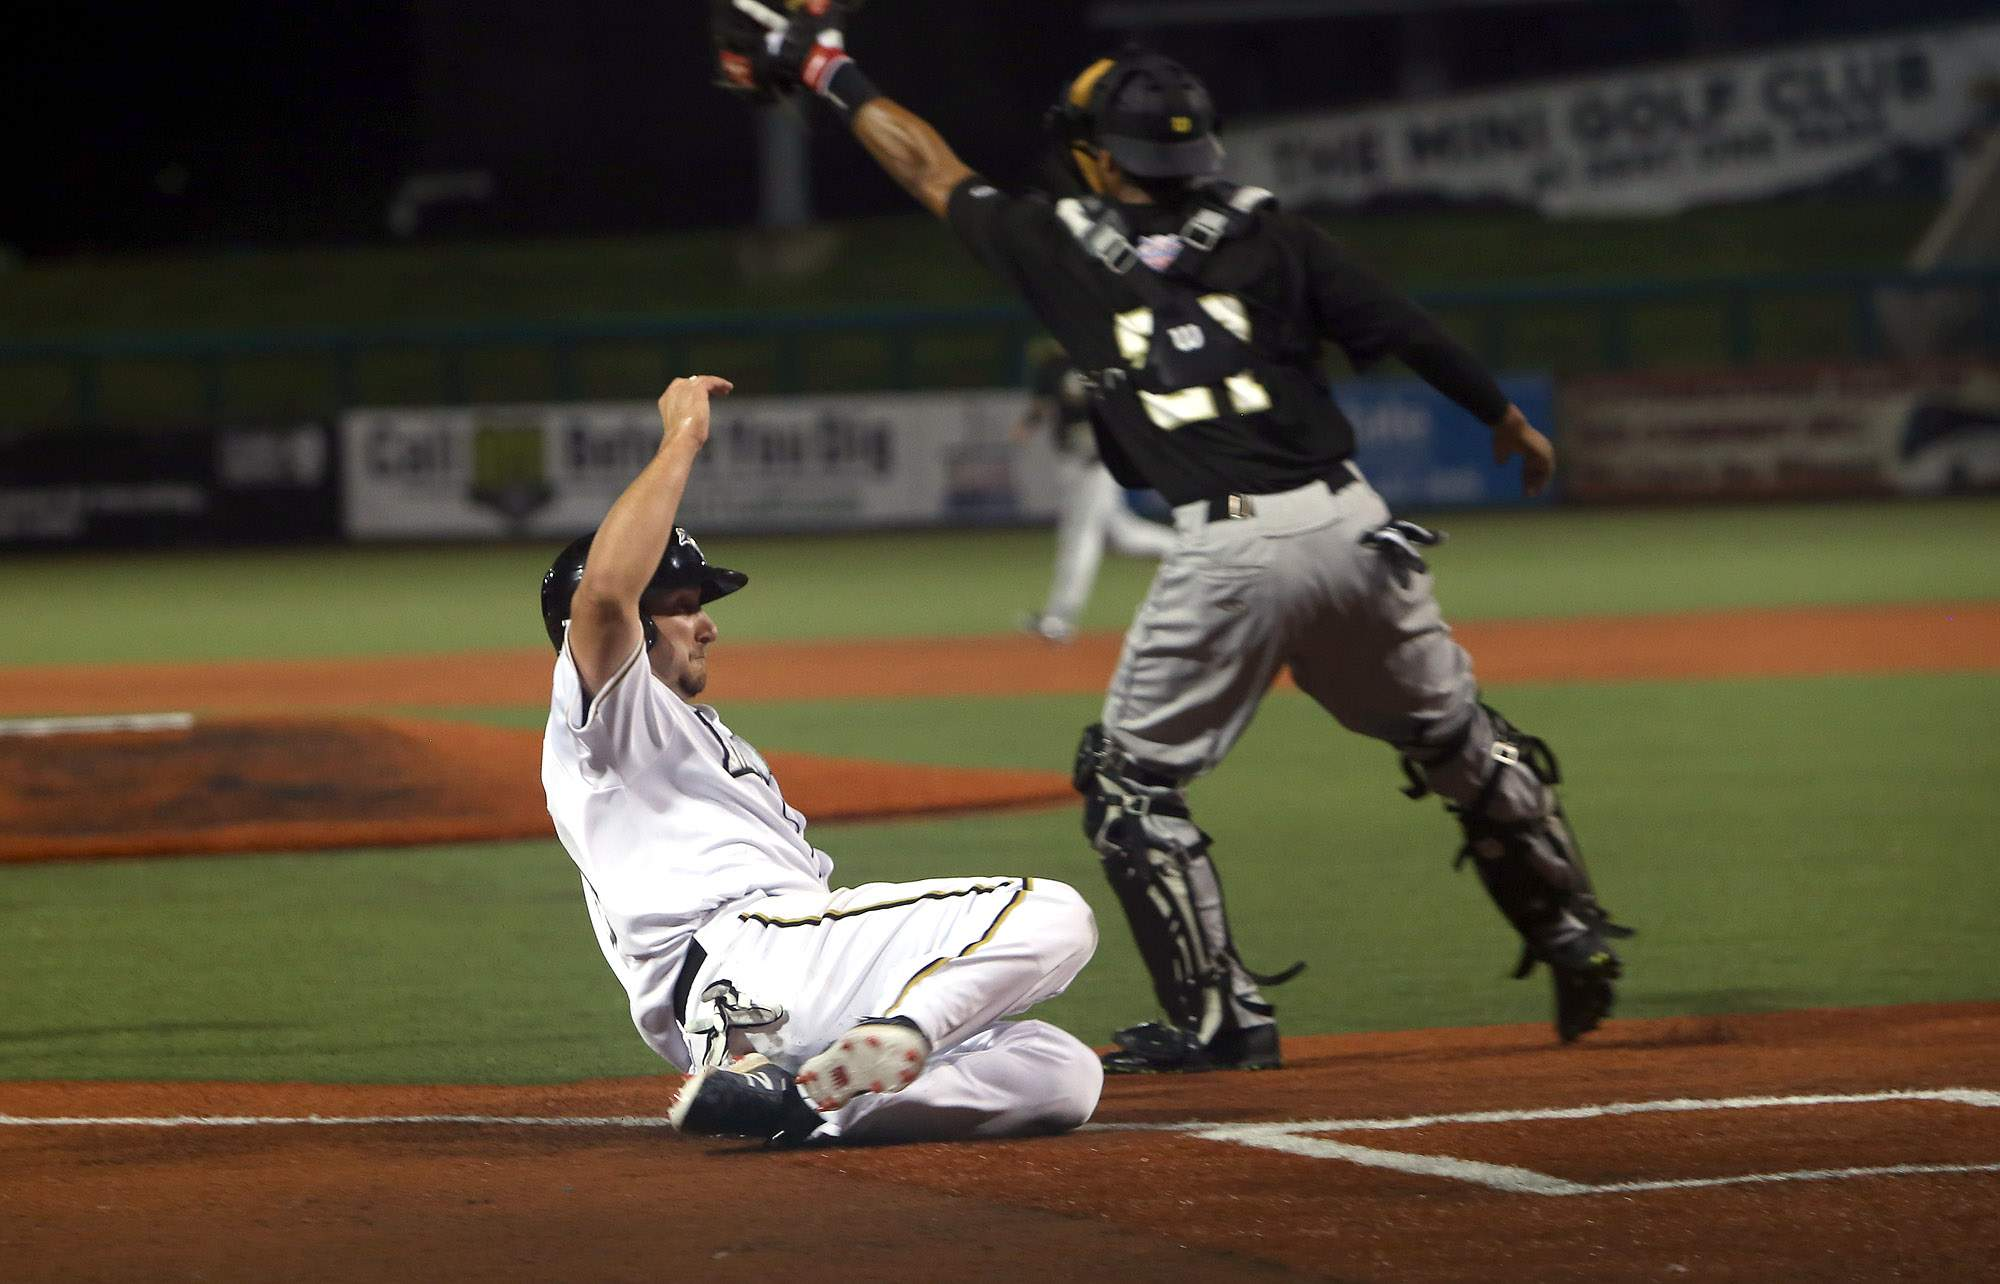 Joe Dudek slides home during the second game of Saturday's doubleheader against River City at Rent One Park.